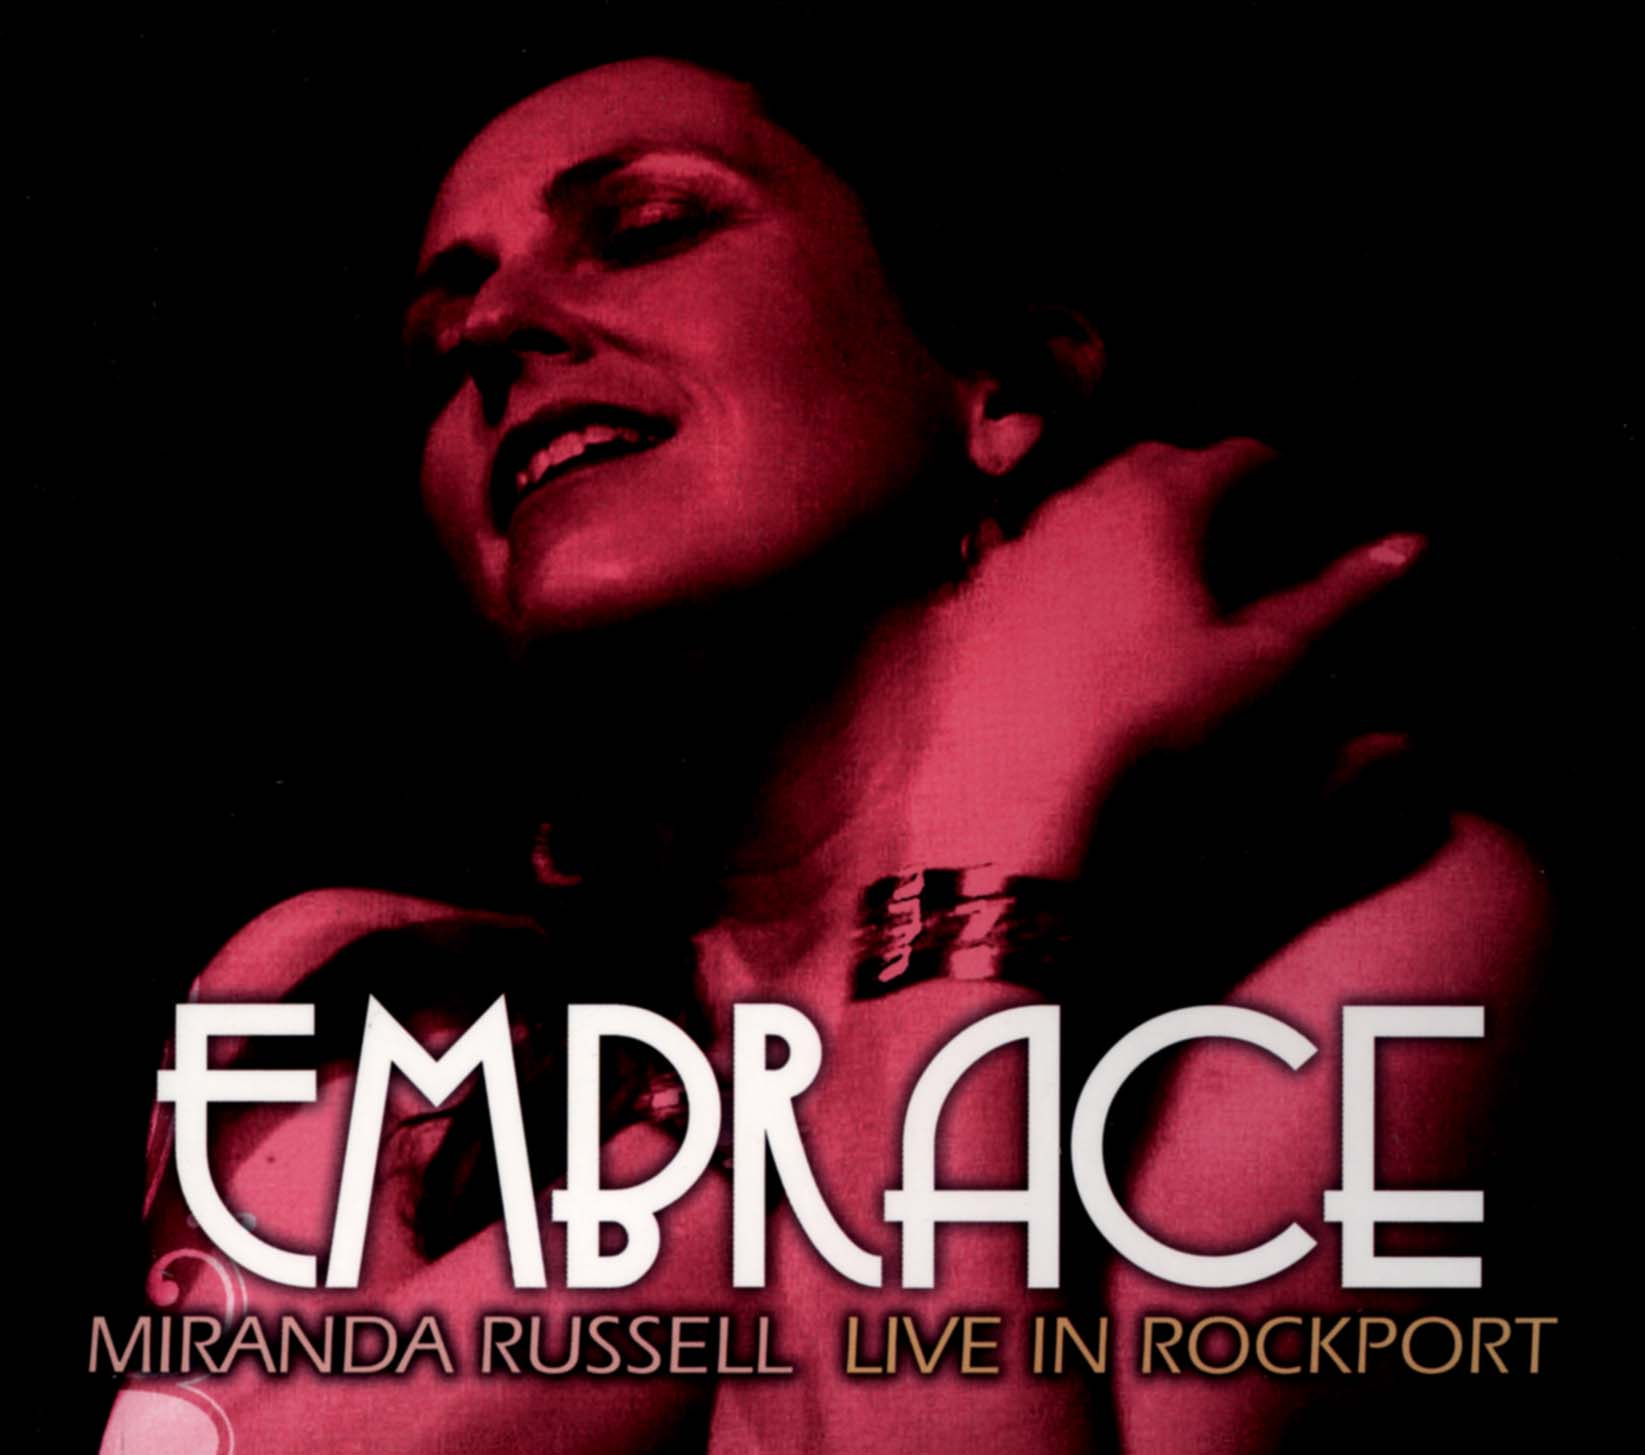 Miranda Russell: Embrace - Live in Rockport